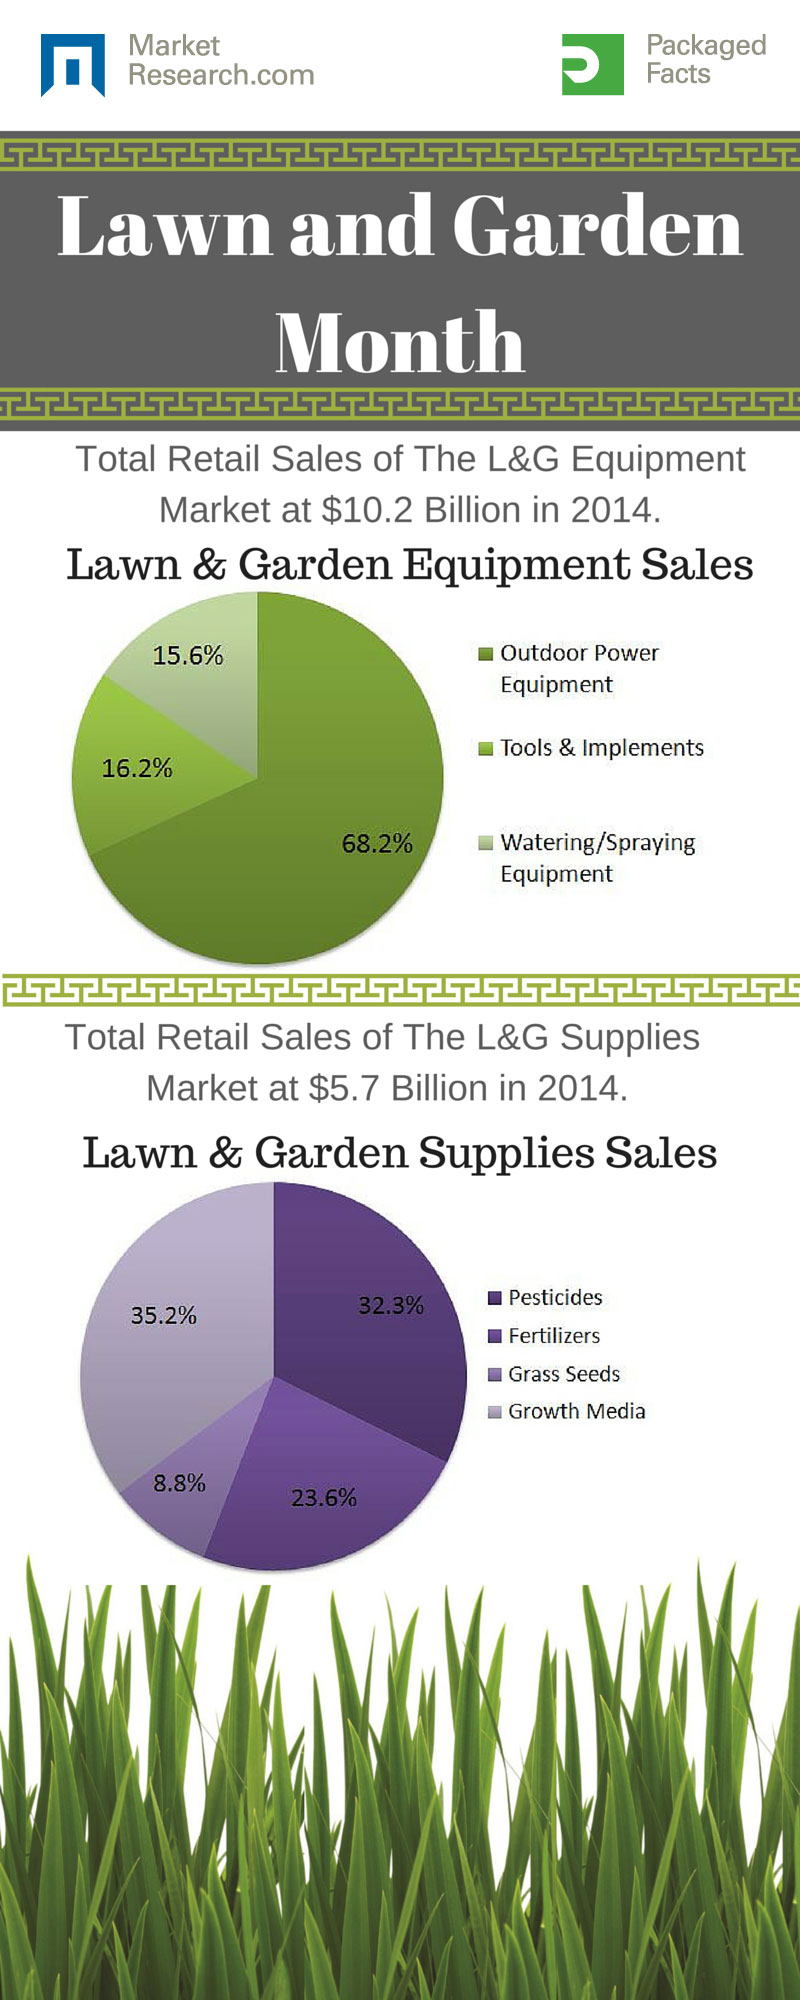 MarketResearch.com-Infographic-Lawn-and-Garden-Month.jpg